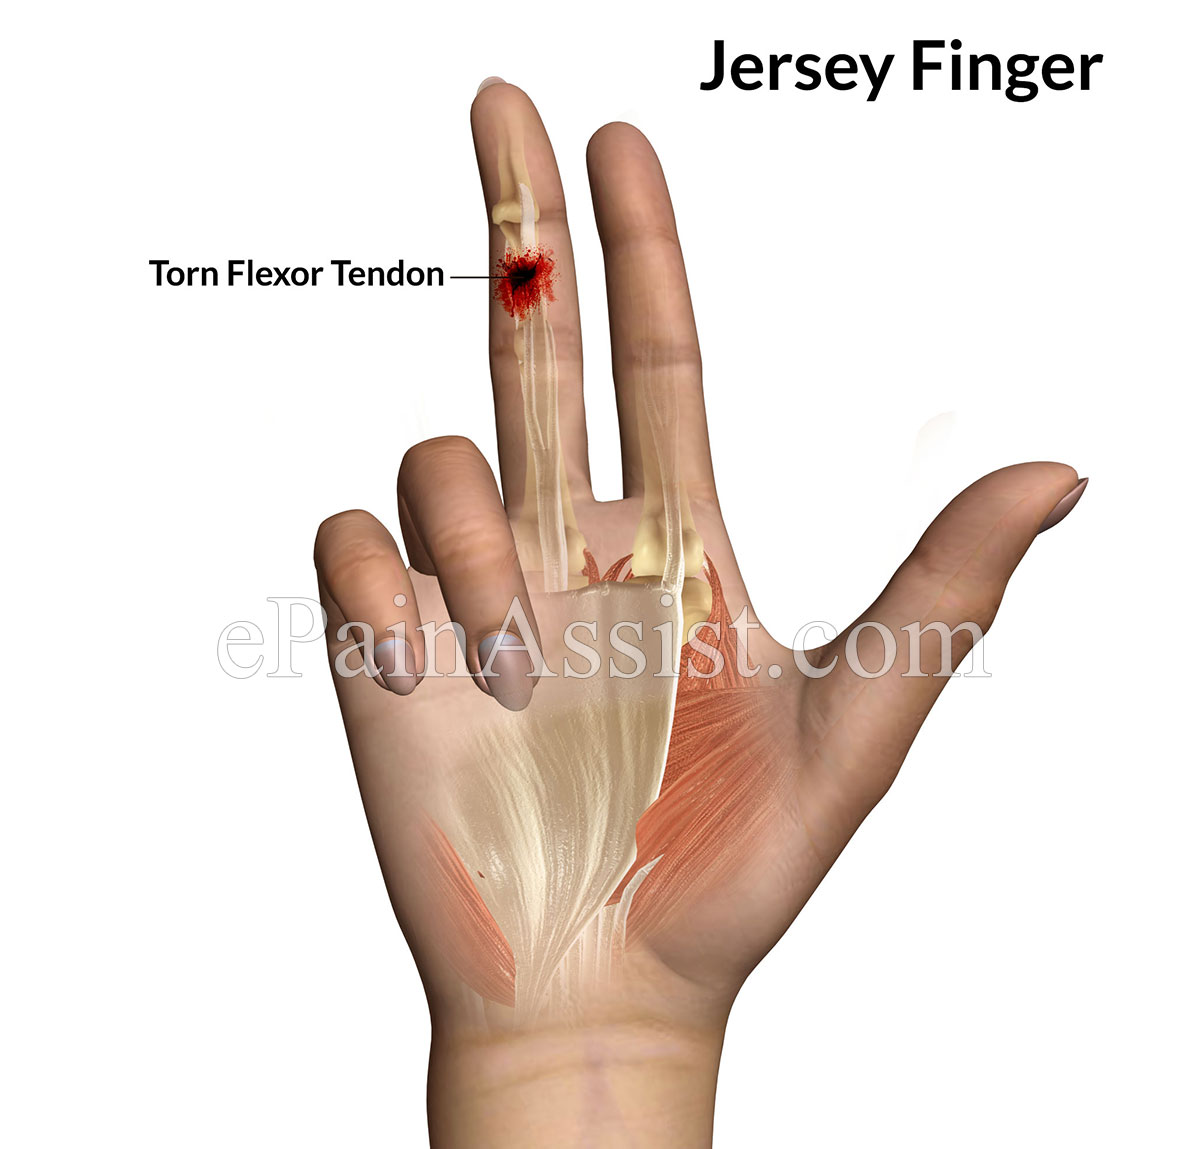 Jersey Finger or Football Finger